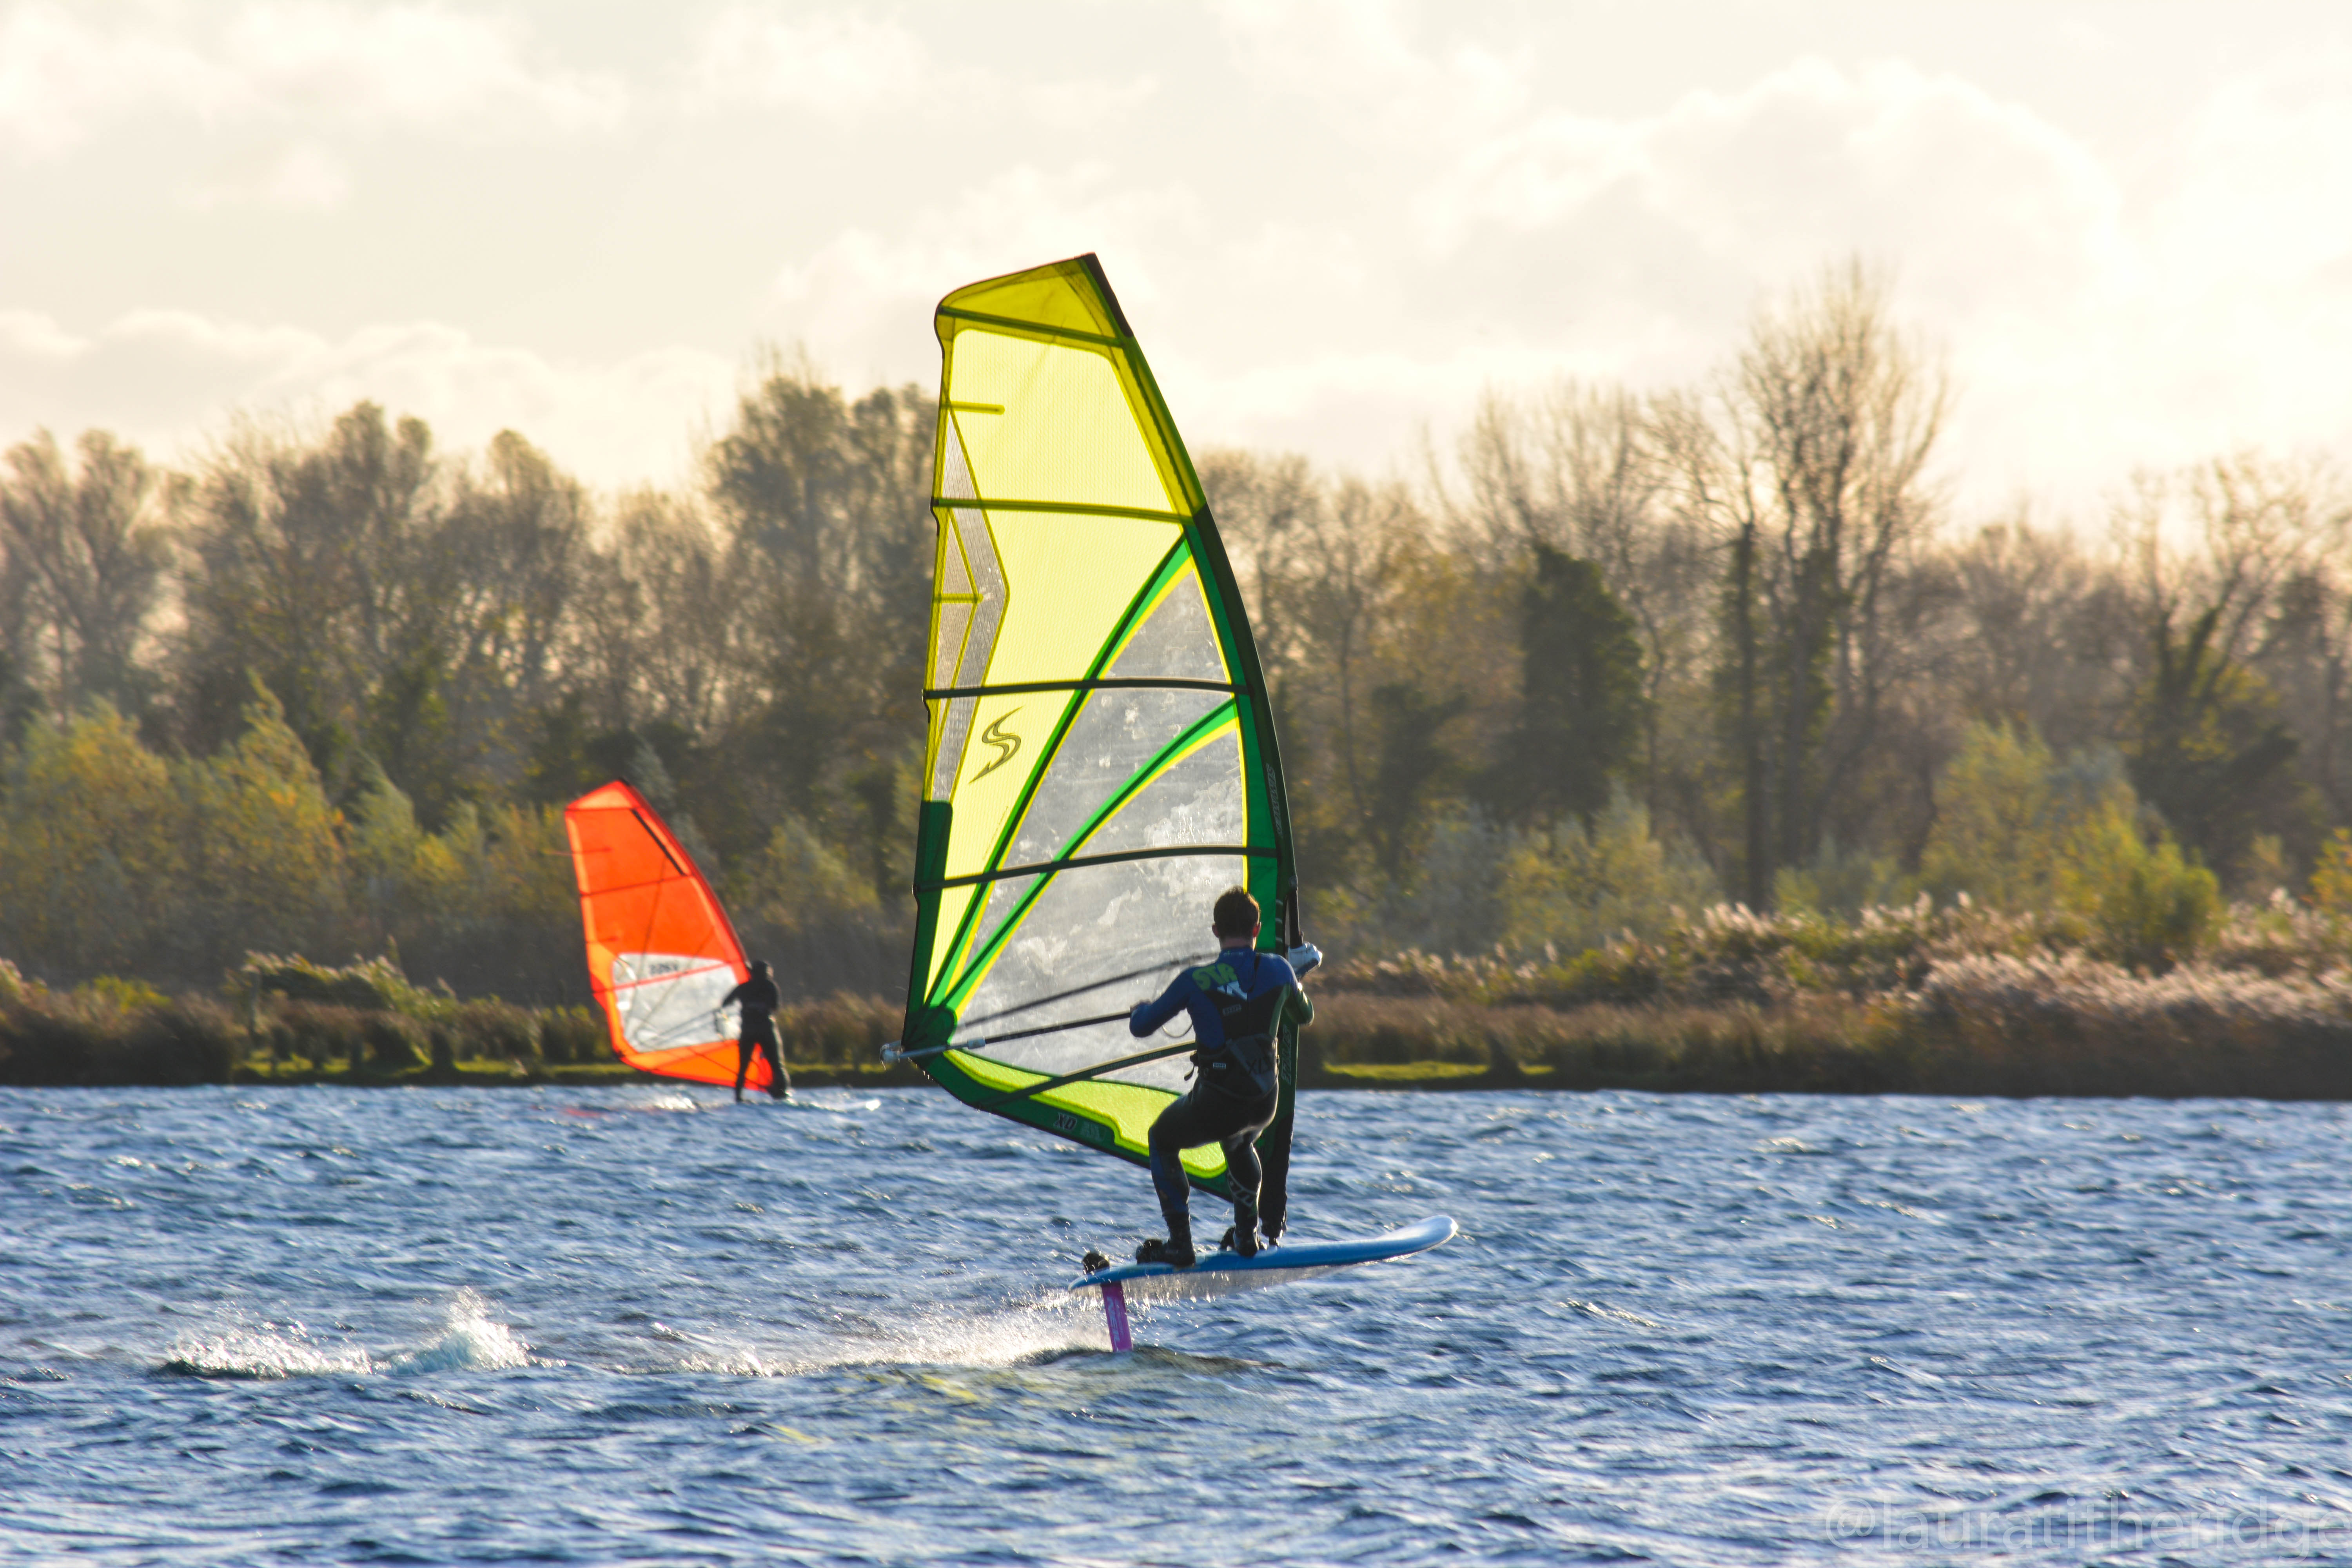 Luke Foiling at BaBrUWE